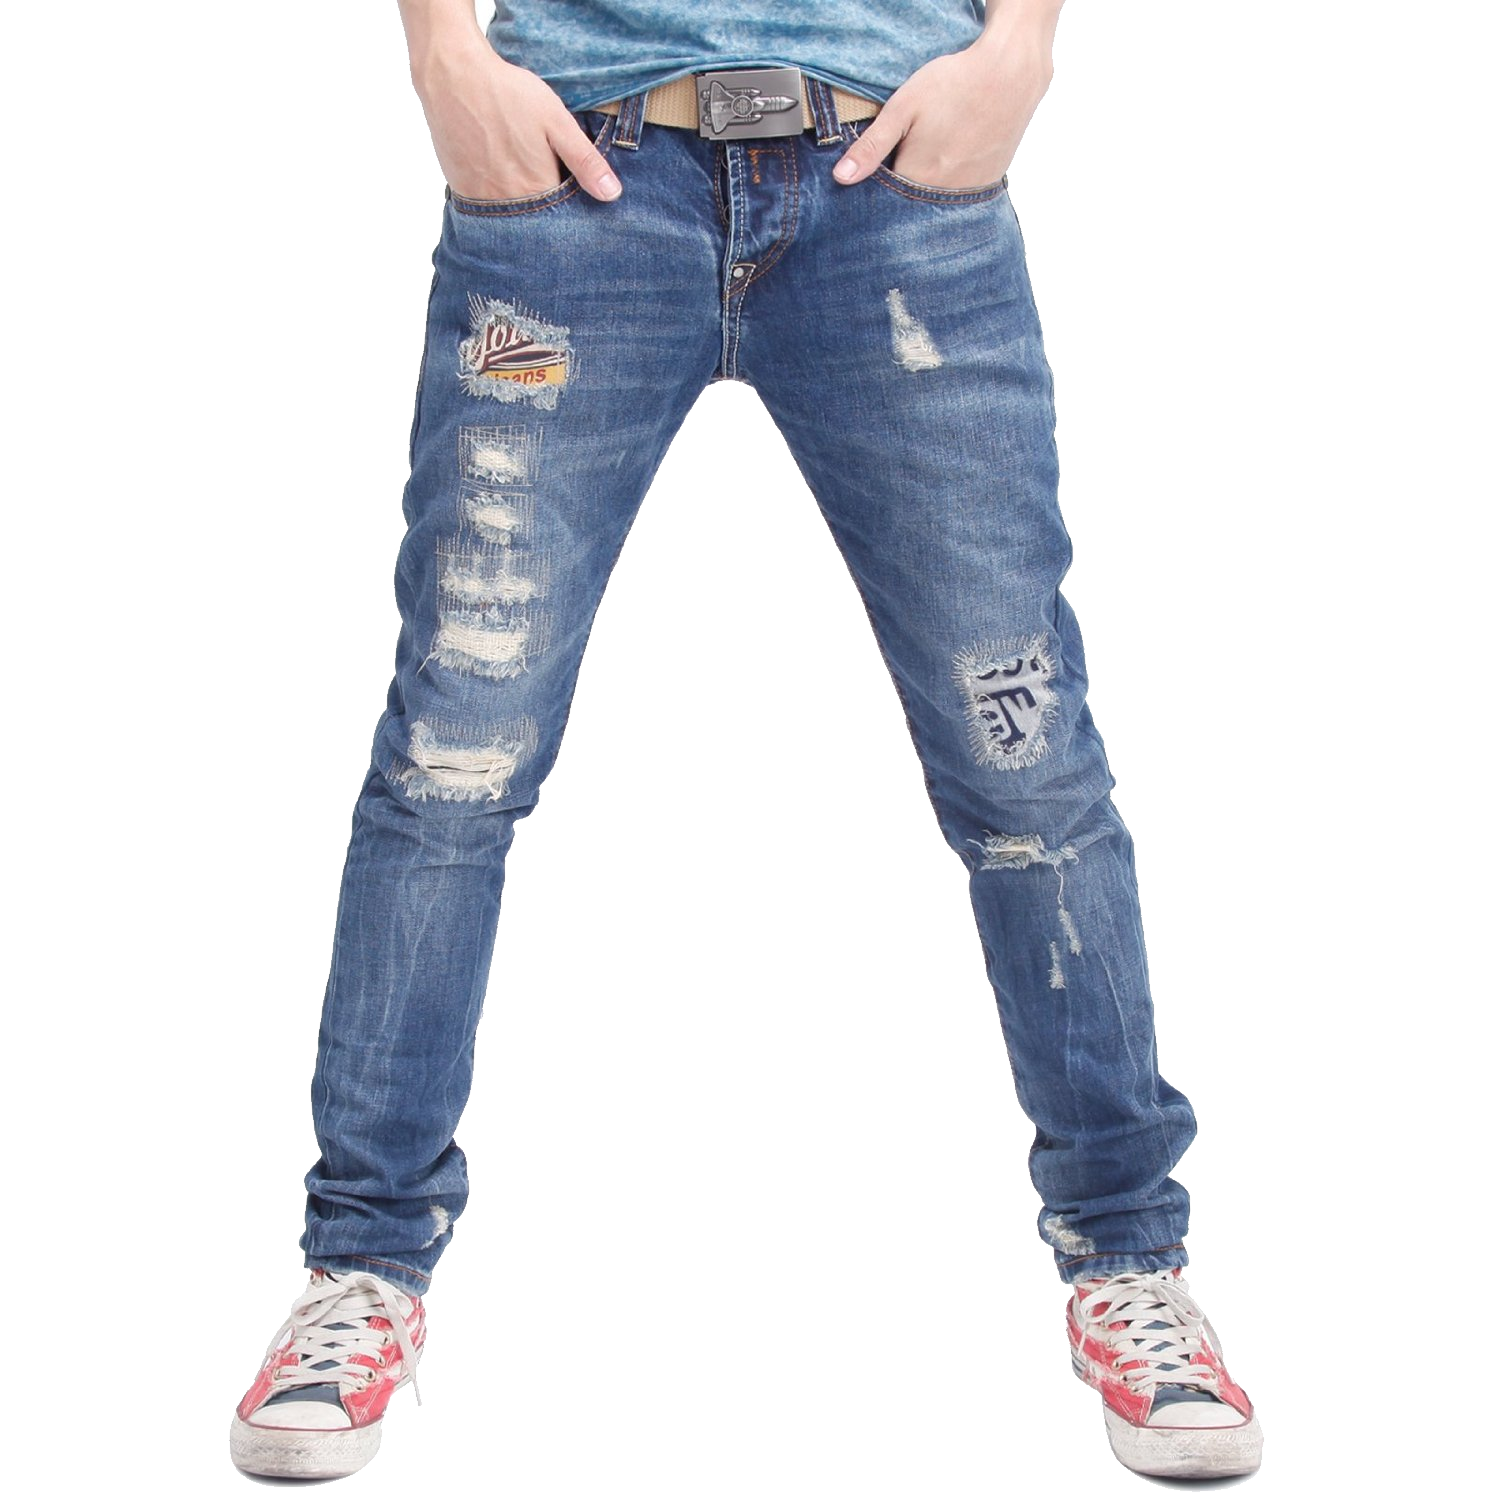 Blue Jeans Png Image Ripped Jeans Men White Jeans Men 80s Fashion Trends